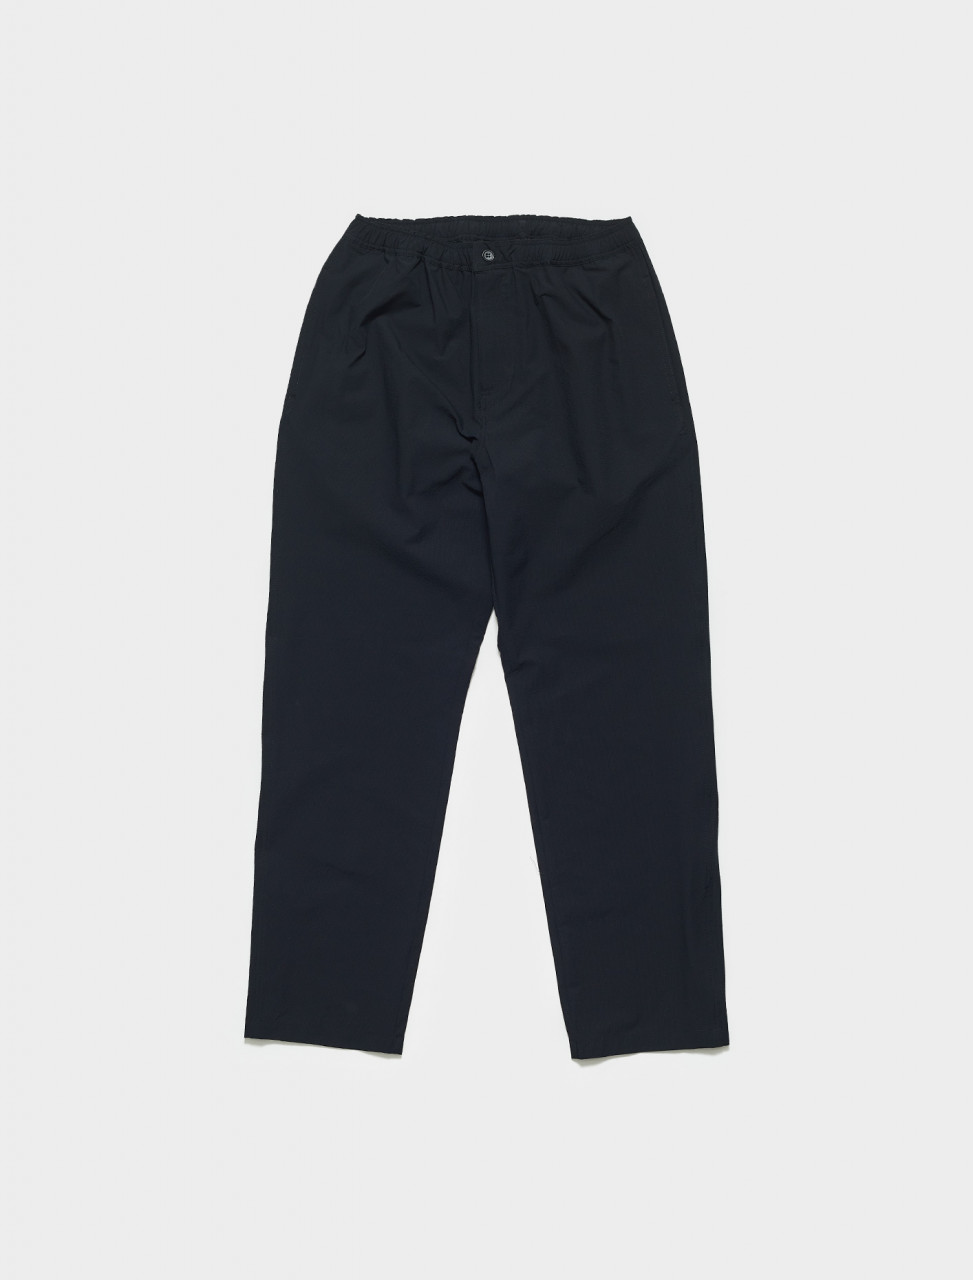 159-01-05-040 SOULLAND FADI TROUSERS BLACK